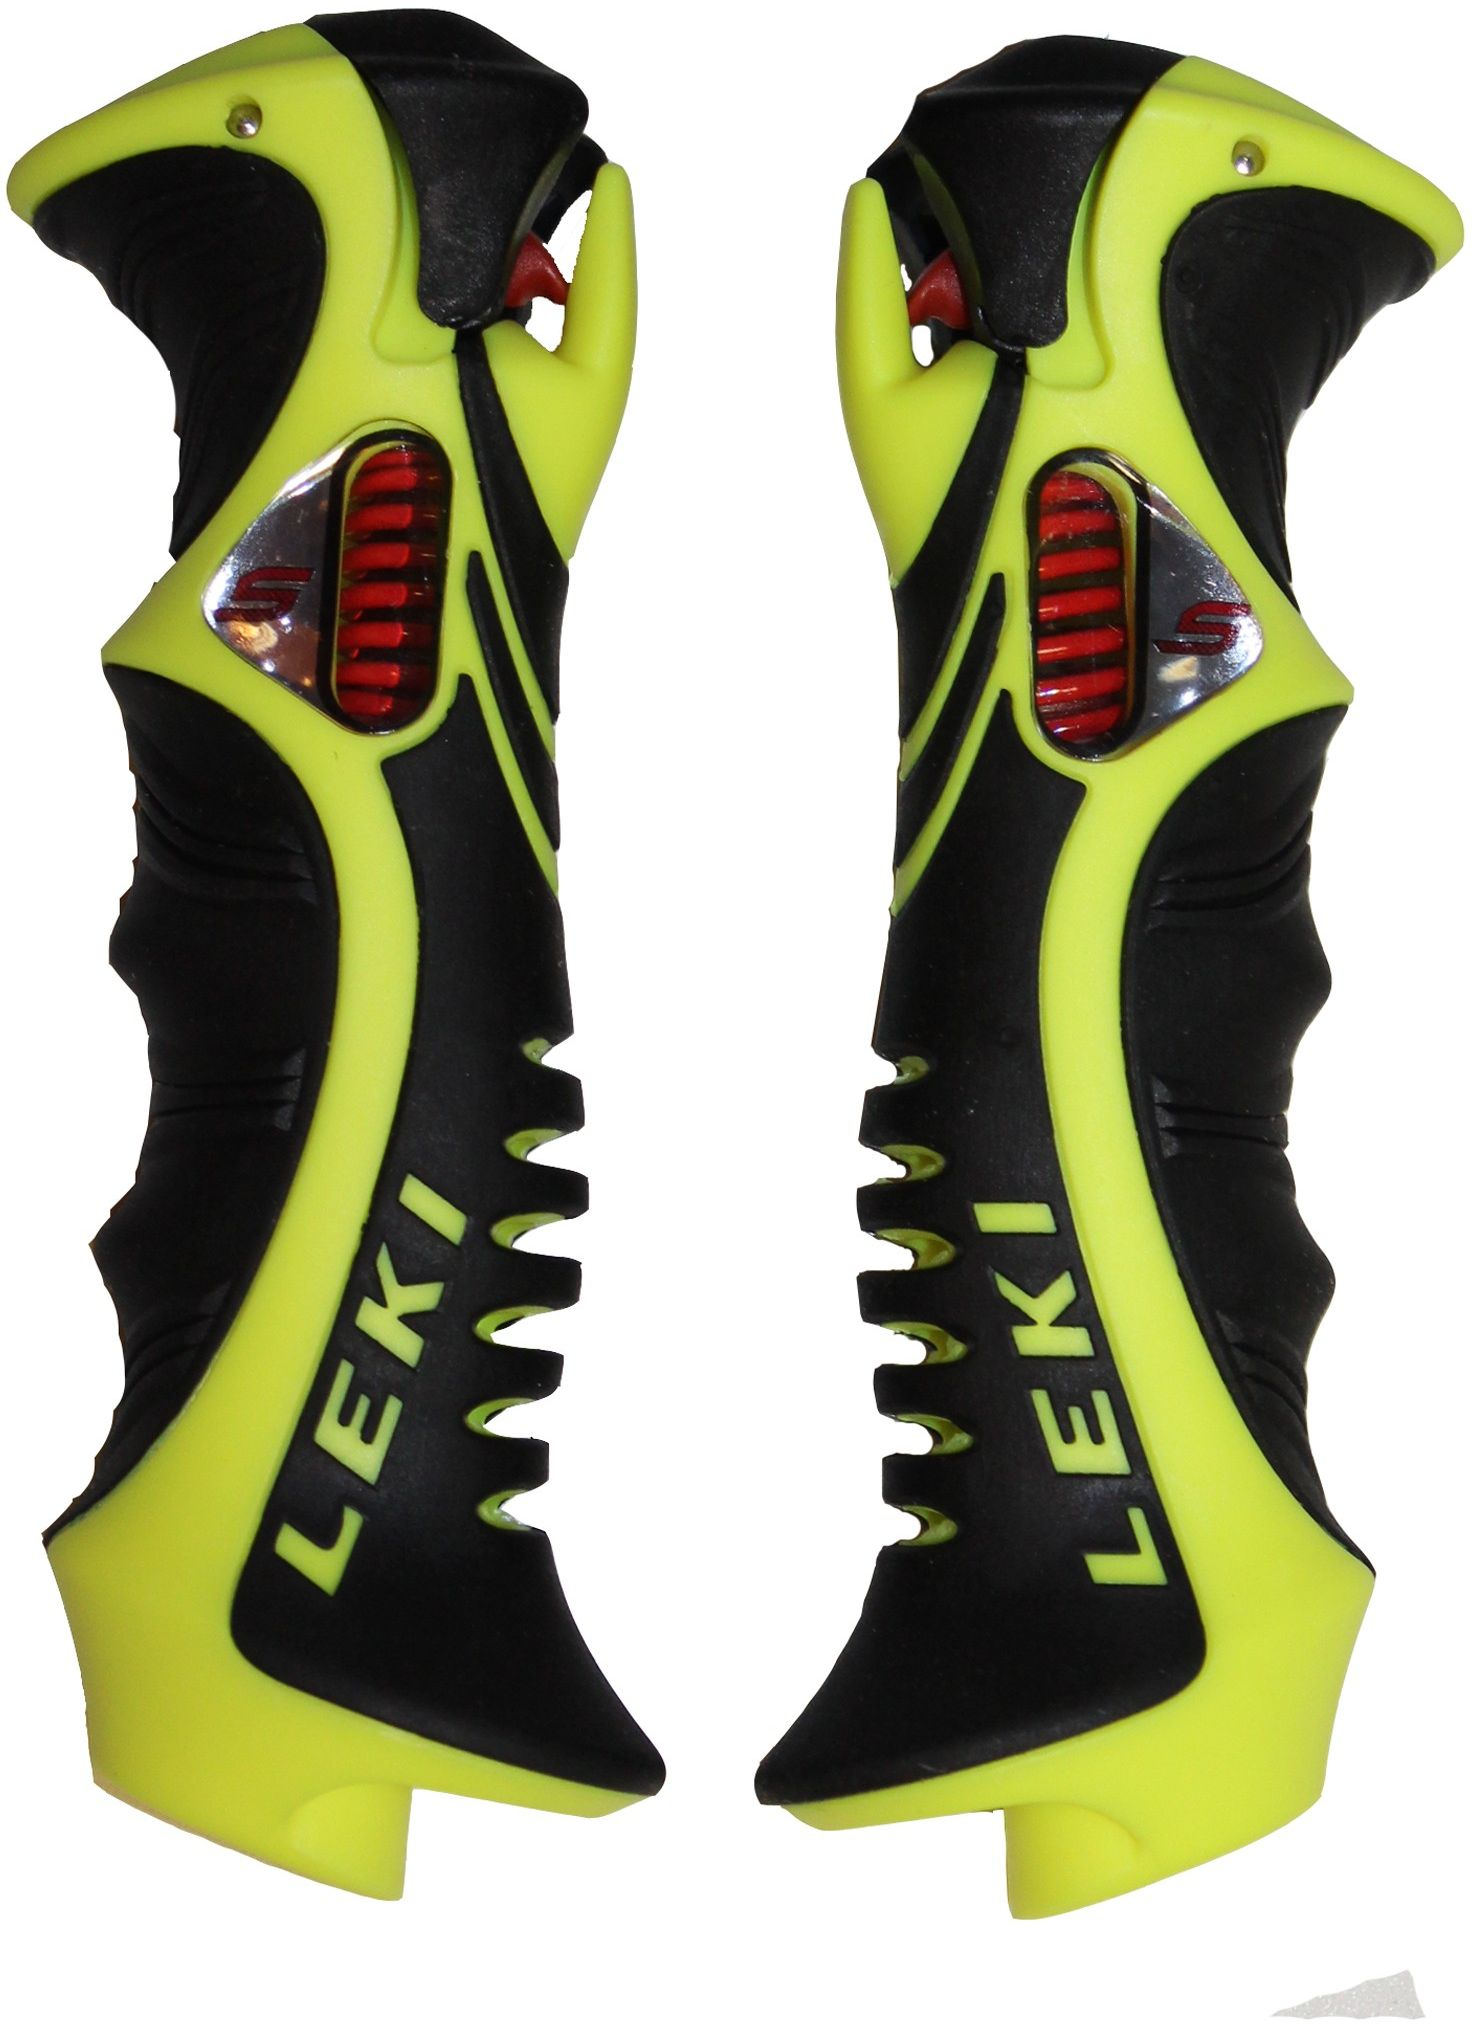 Leki Trigger S Slalom grip 16mm - neonyellow/black uni